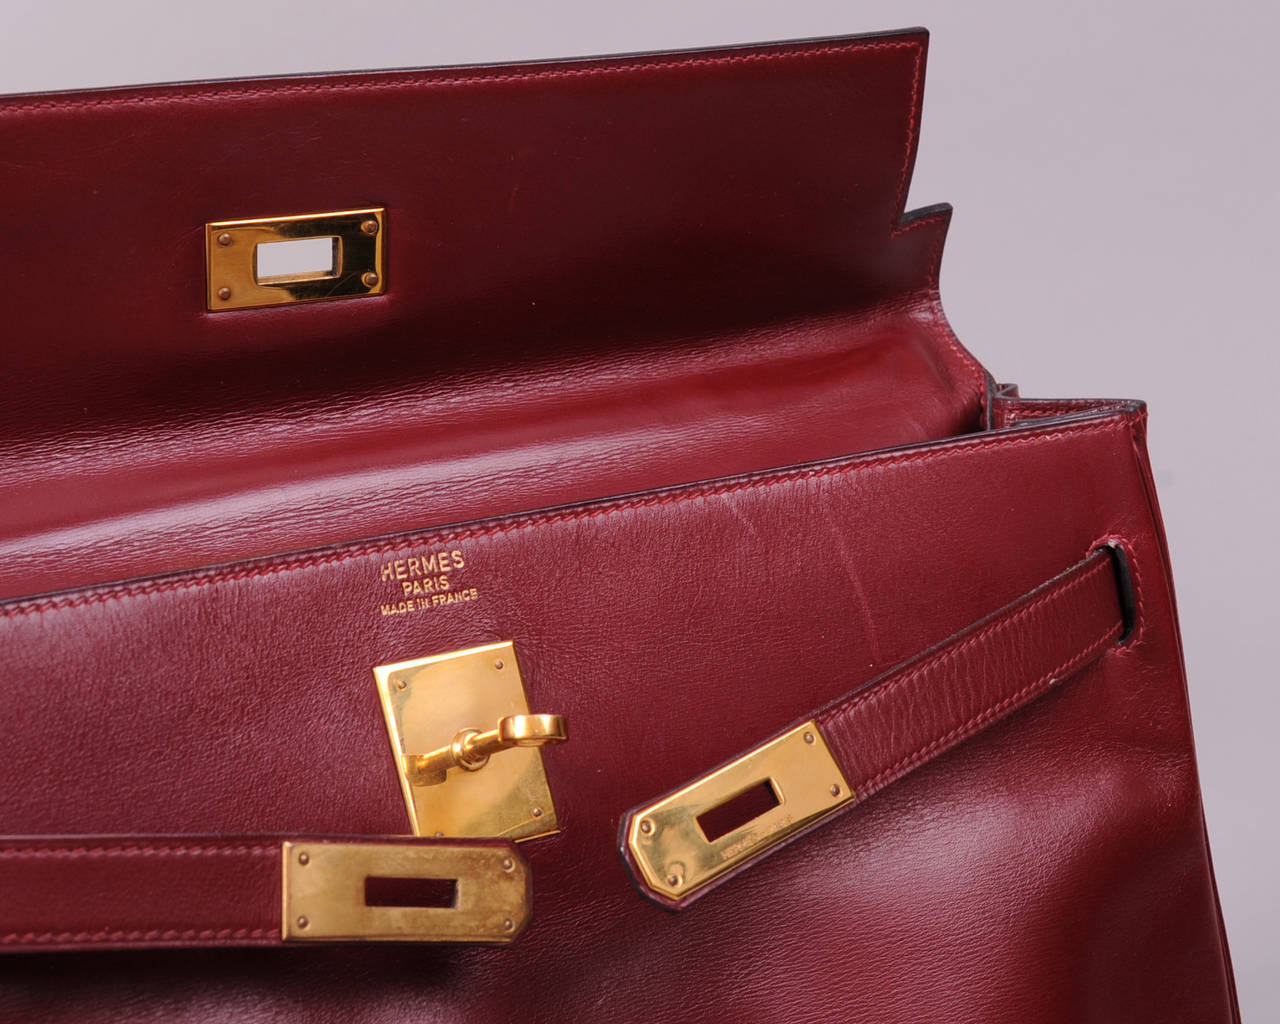 so kelly hermes bag - Hermes Vintage Burgundy Kelly Bag, 35cm For Sale at 1stdibs